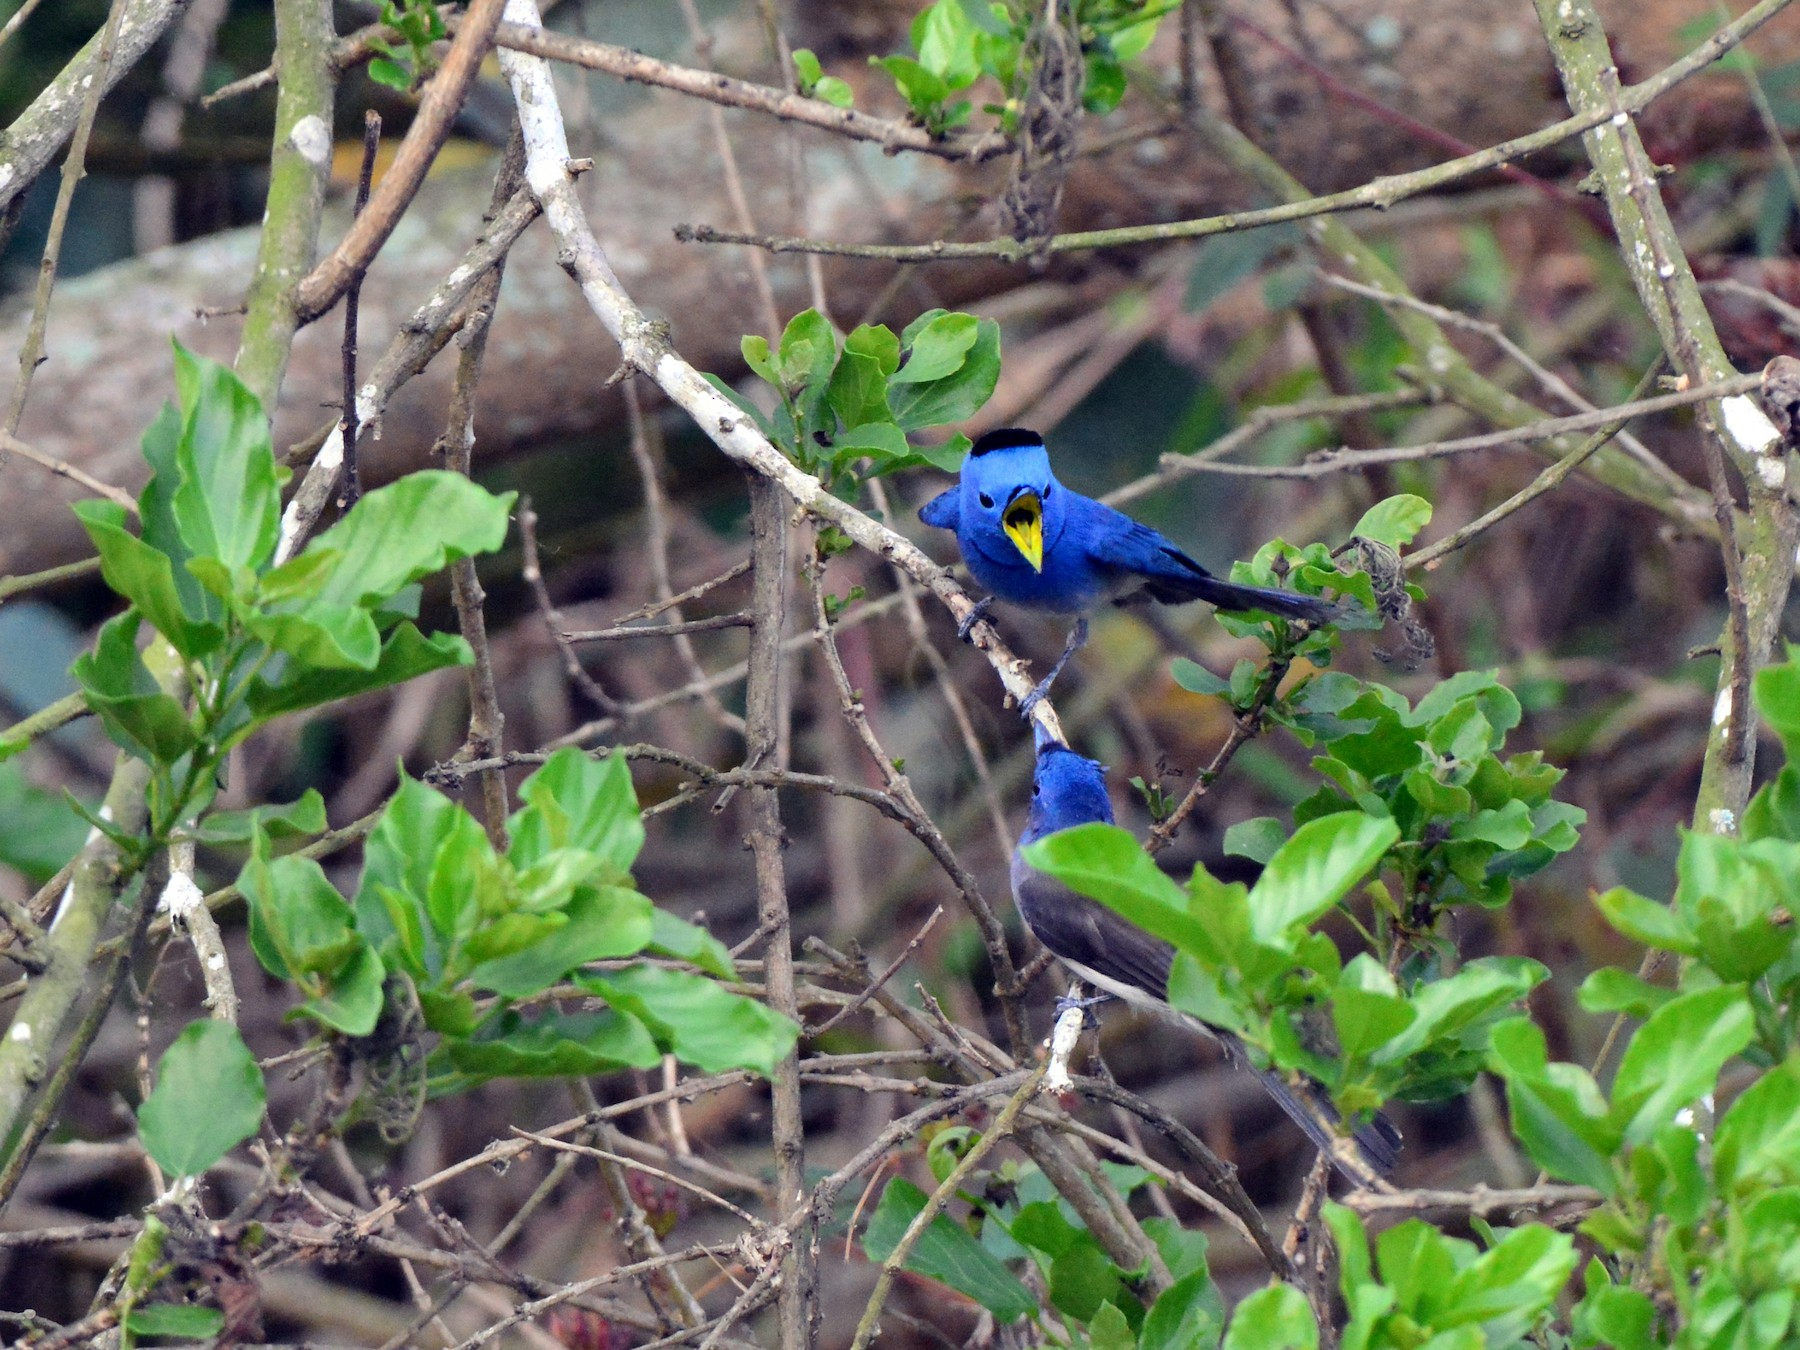 Black-naped Monarch - Jhih-Weit (志偉) TSAI (蔡)